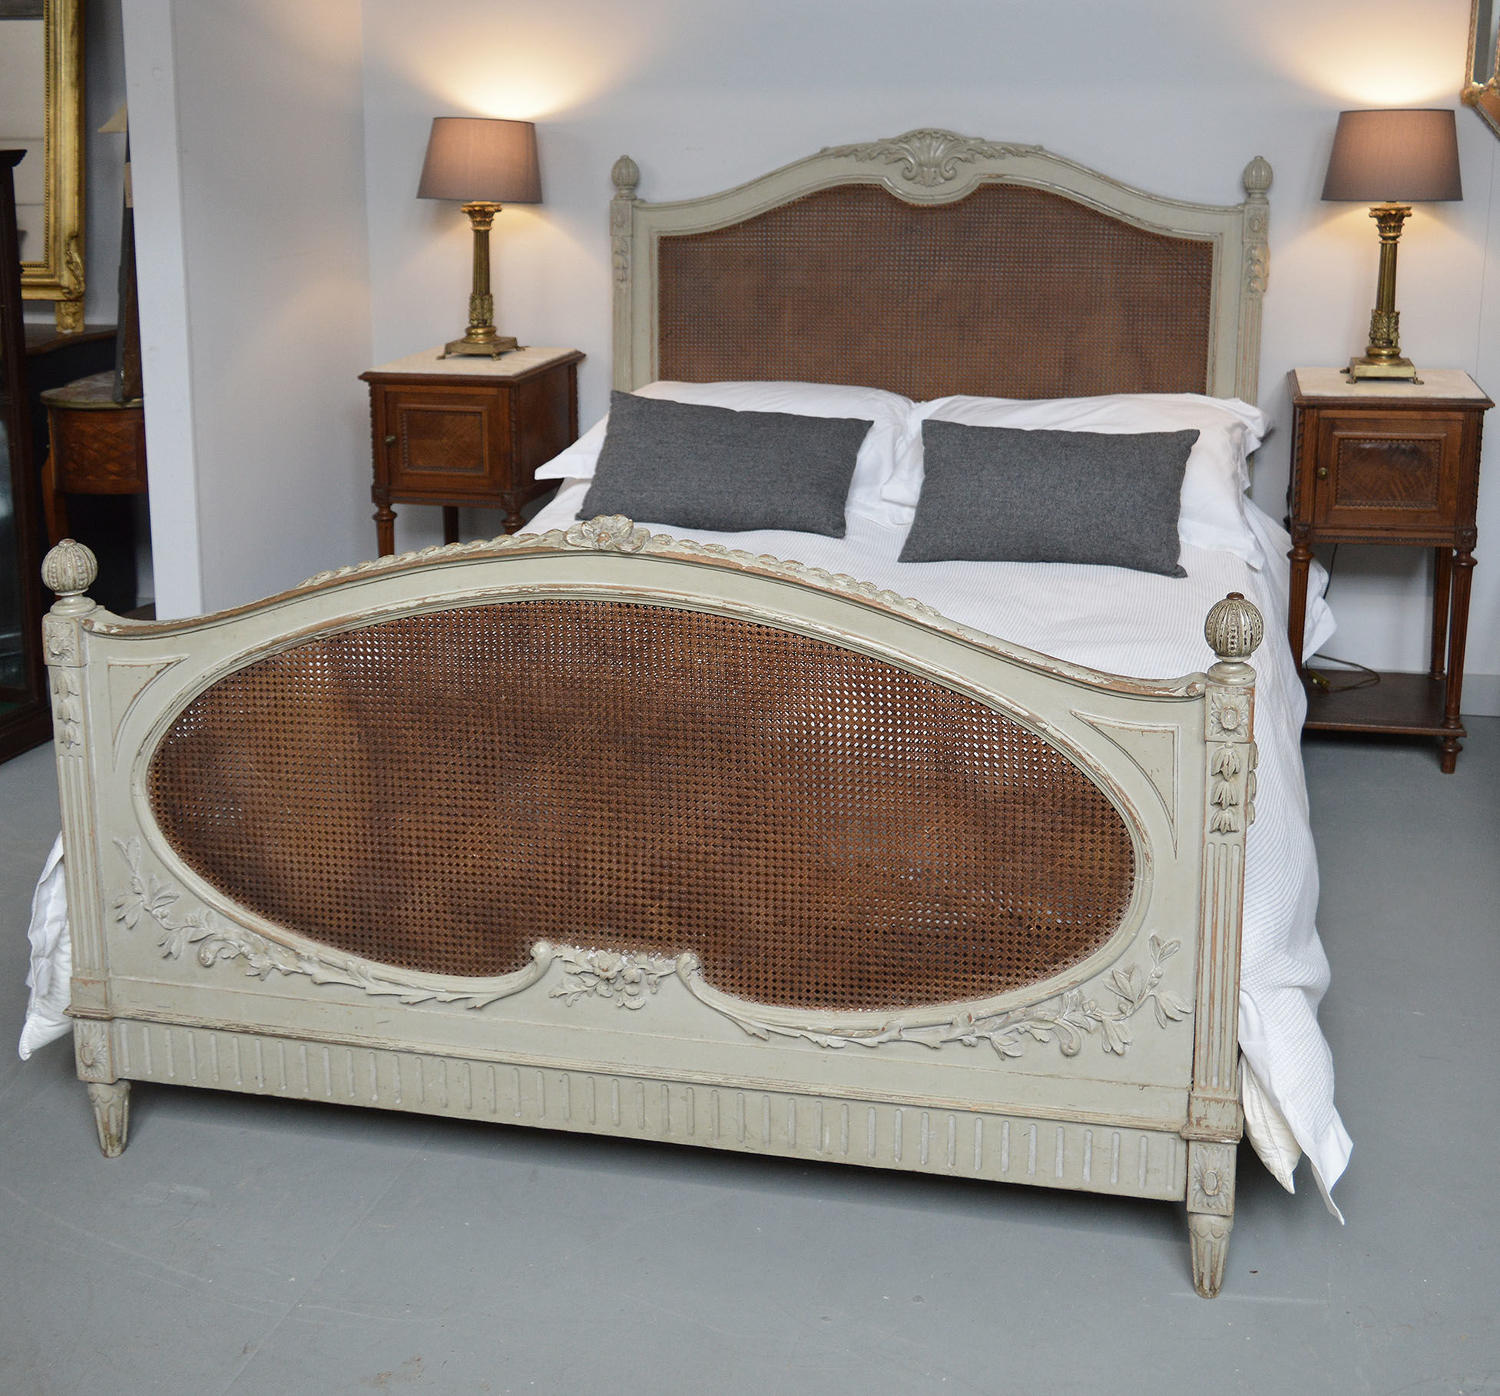 King size Louis XVI style cane bedstead c1900